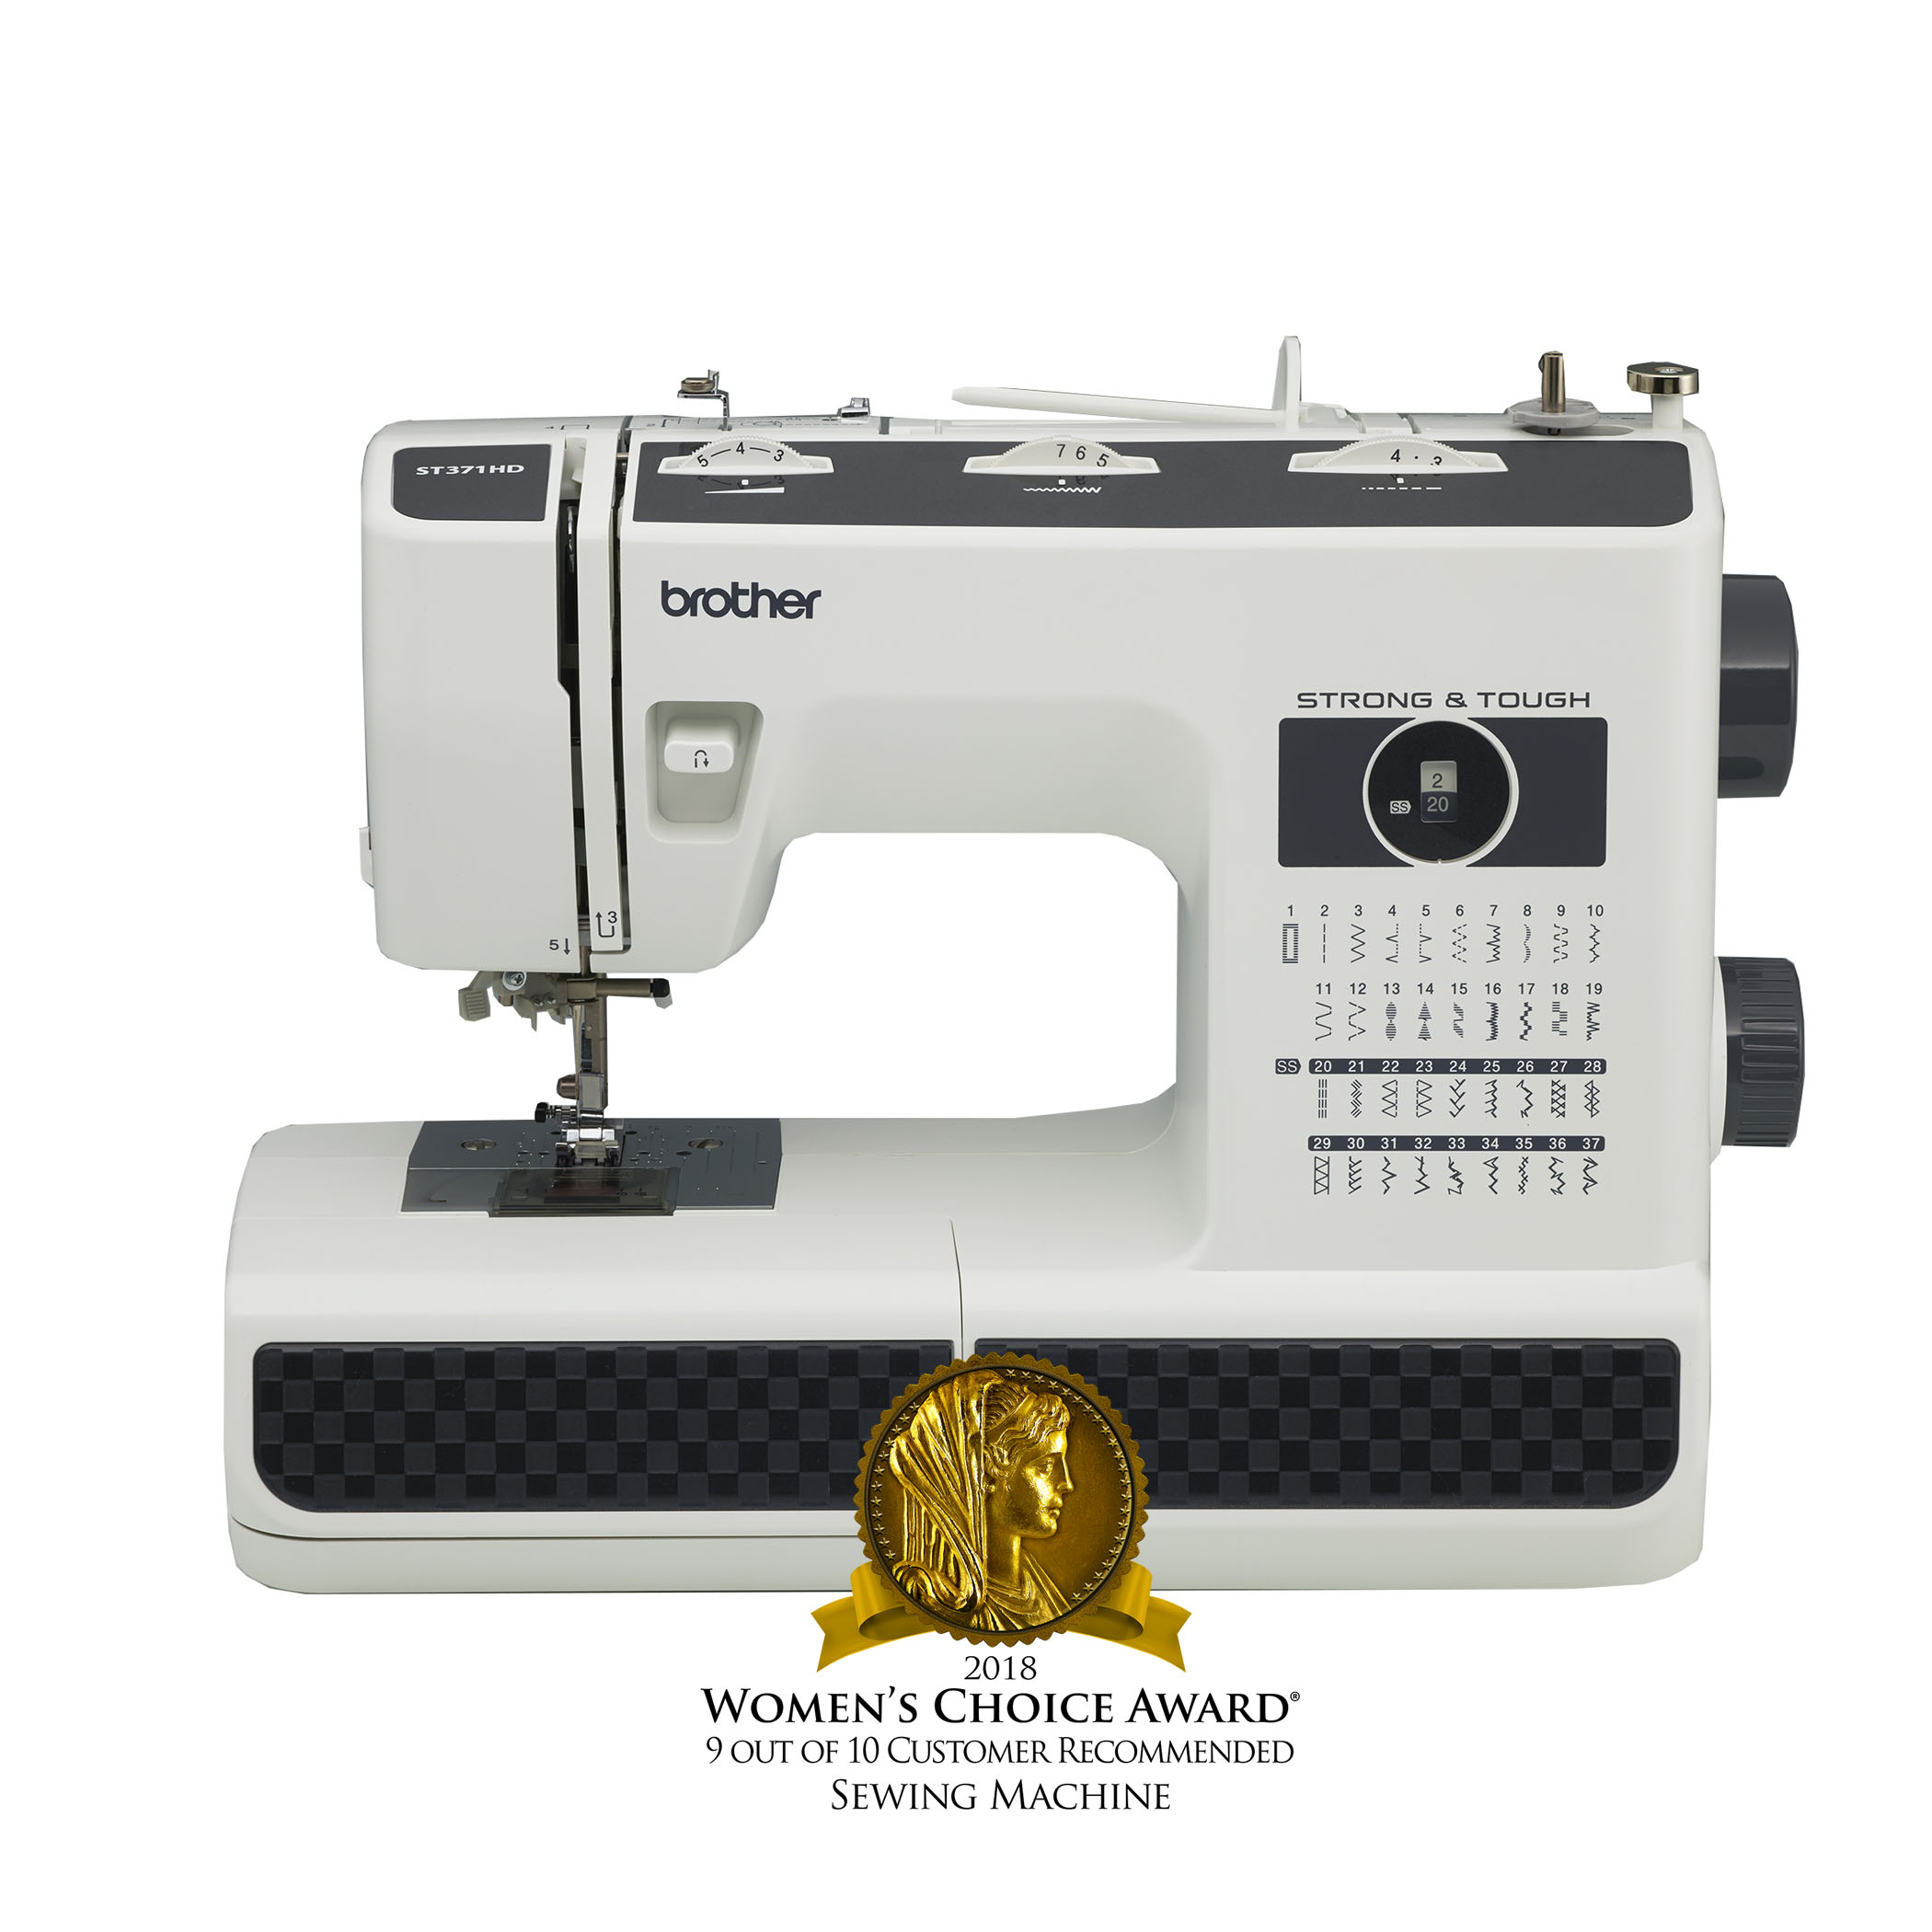 11a3d48bc Brother ST371HD Strong & Tough Sewing Machine, 37 Built-In Stitches,  Heavyweight Needles, 6 Quick-Change Sewing Feet, 1 Each - Walmart.com